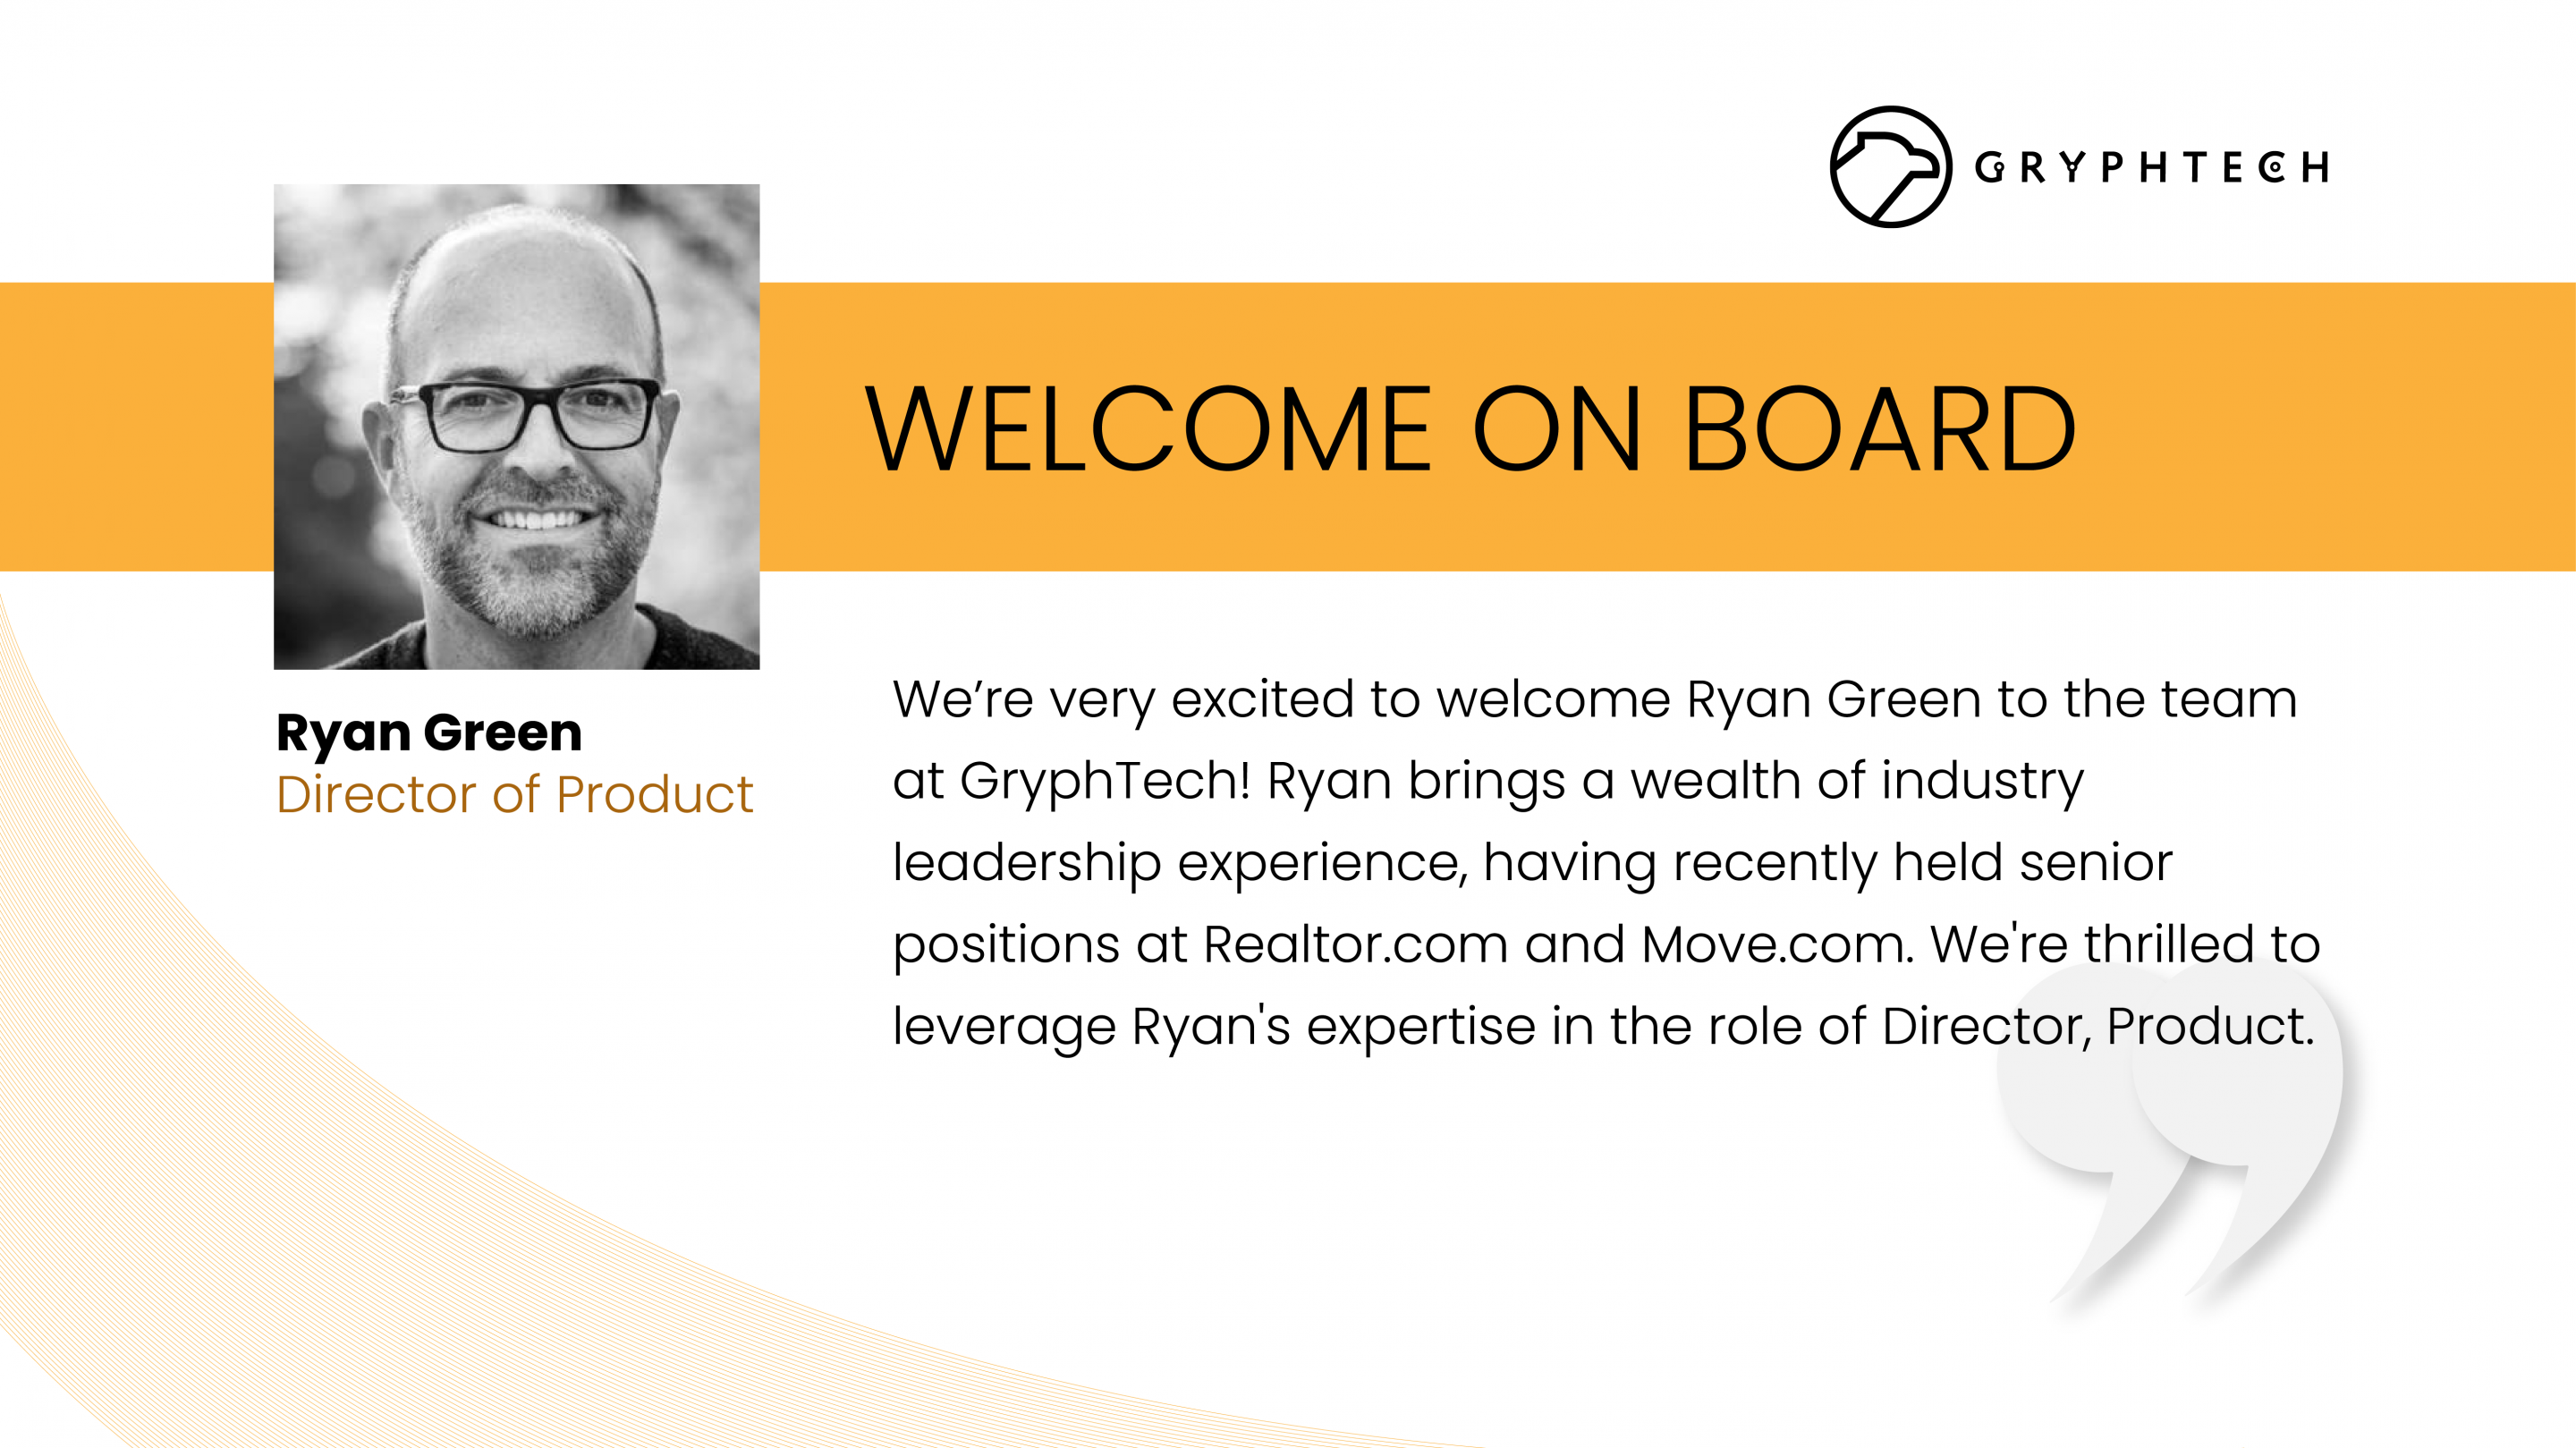 Welcome to GryphTech Ryan